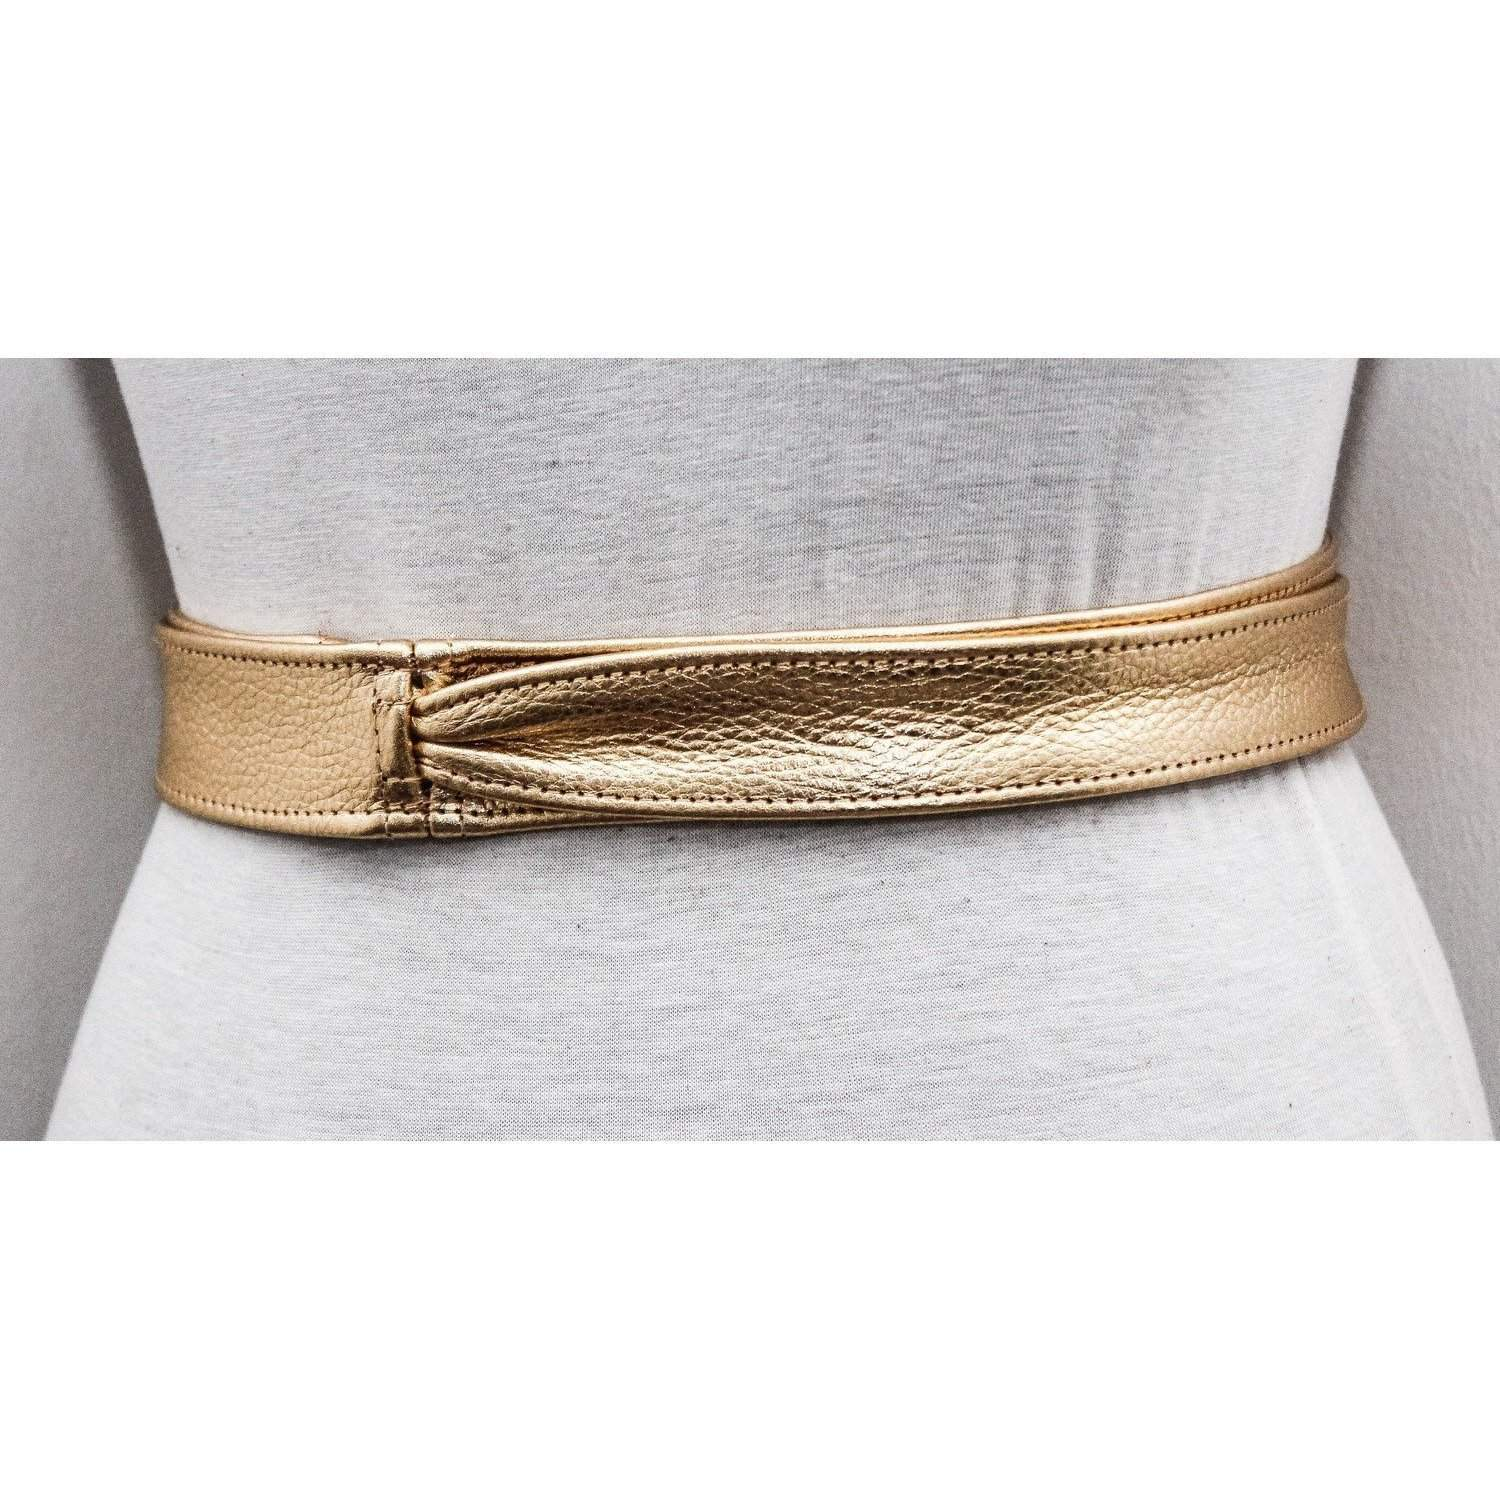 Gold Obi Belt | Leather Bridal Belt | Sash belt | Obi Belt | Plus Size accessory | Thin Gold Leather Belt| Bridesmaid Belt | Wrap Belt - loveyaayaa